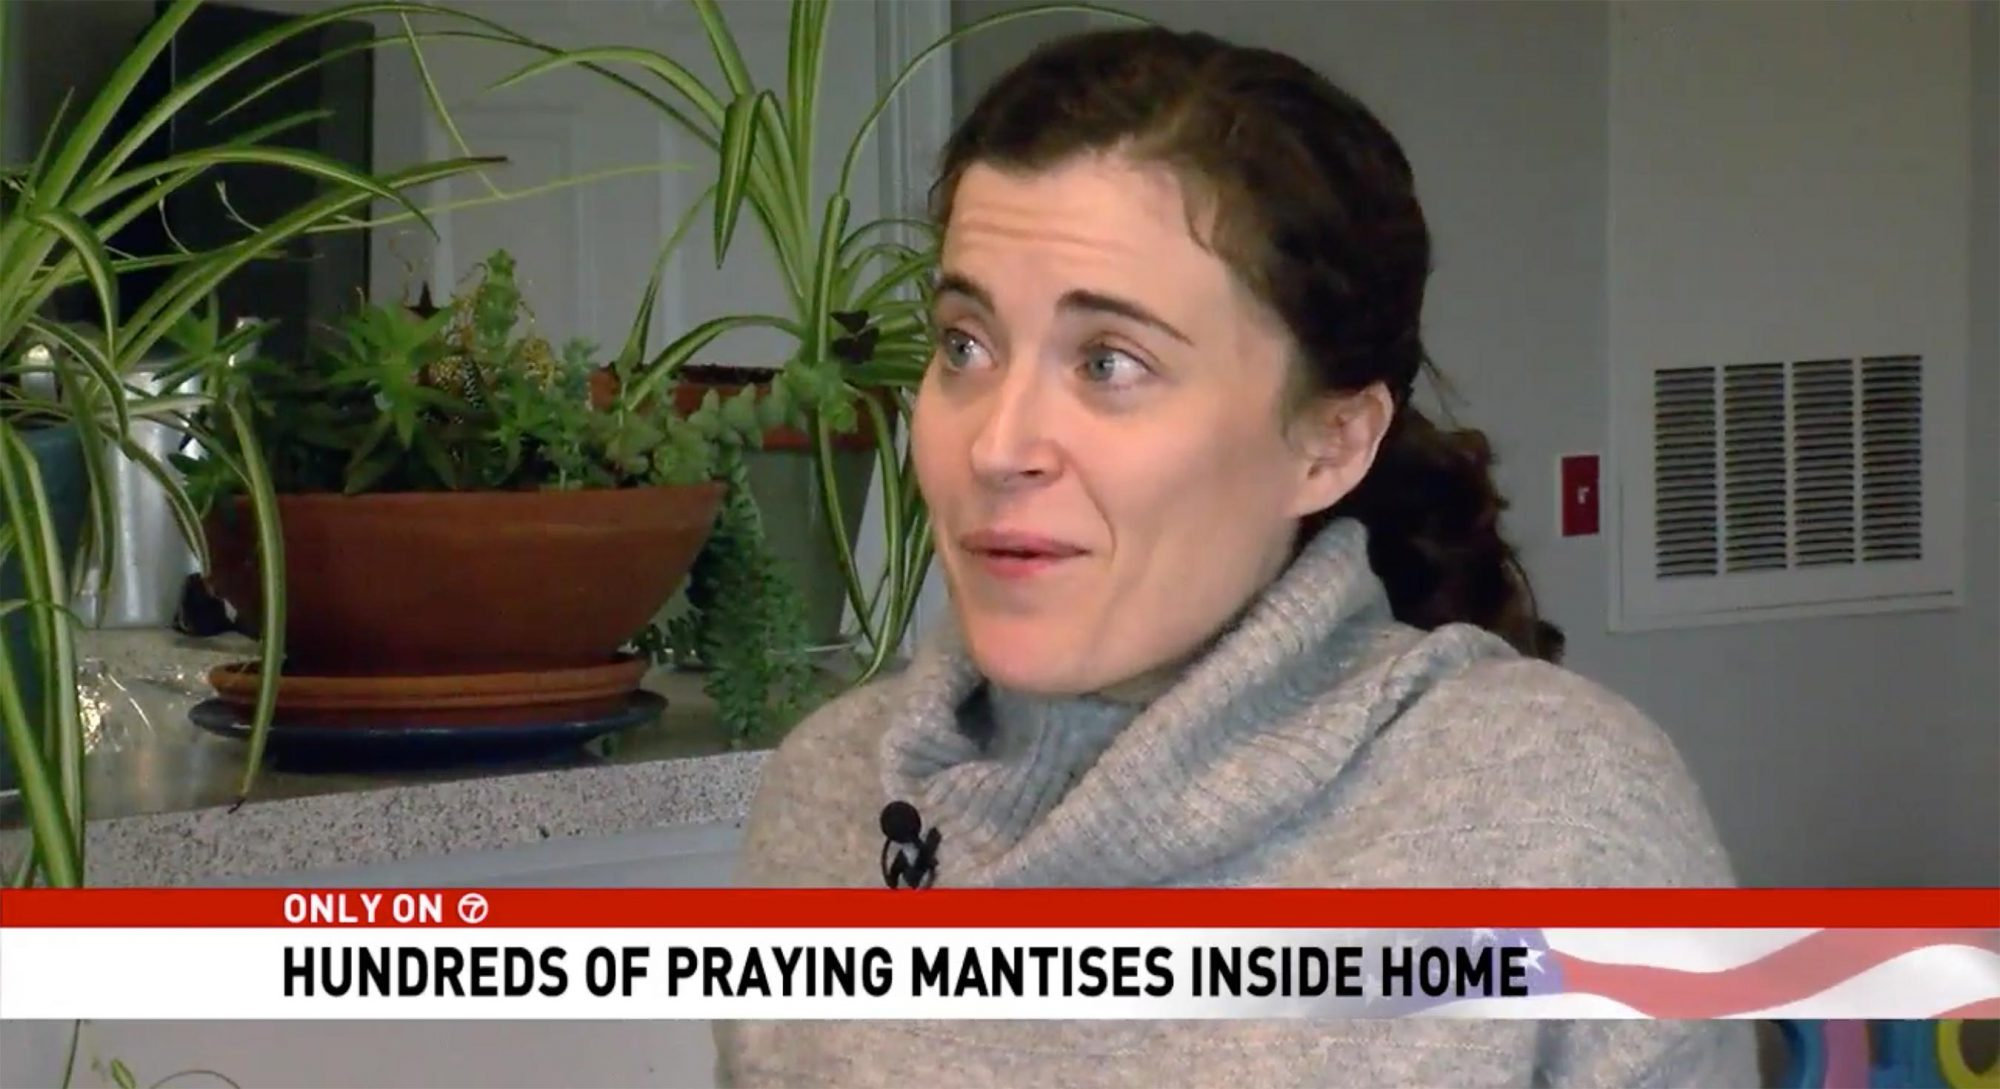 Virginia Woman's Home Invaded by More Than 100 Praying Mantises Brought in by Christmas Tree